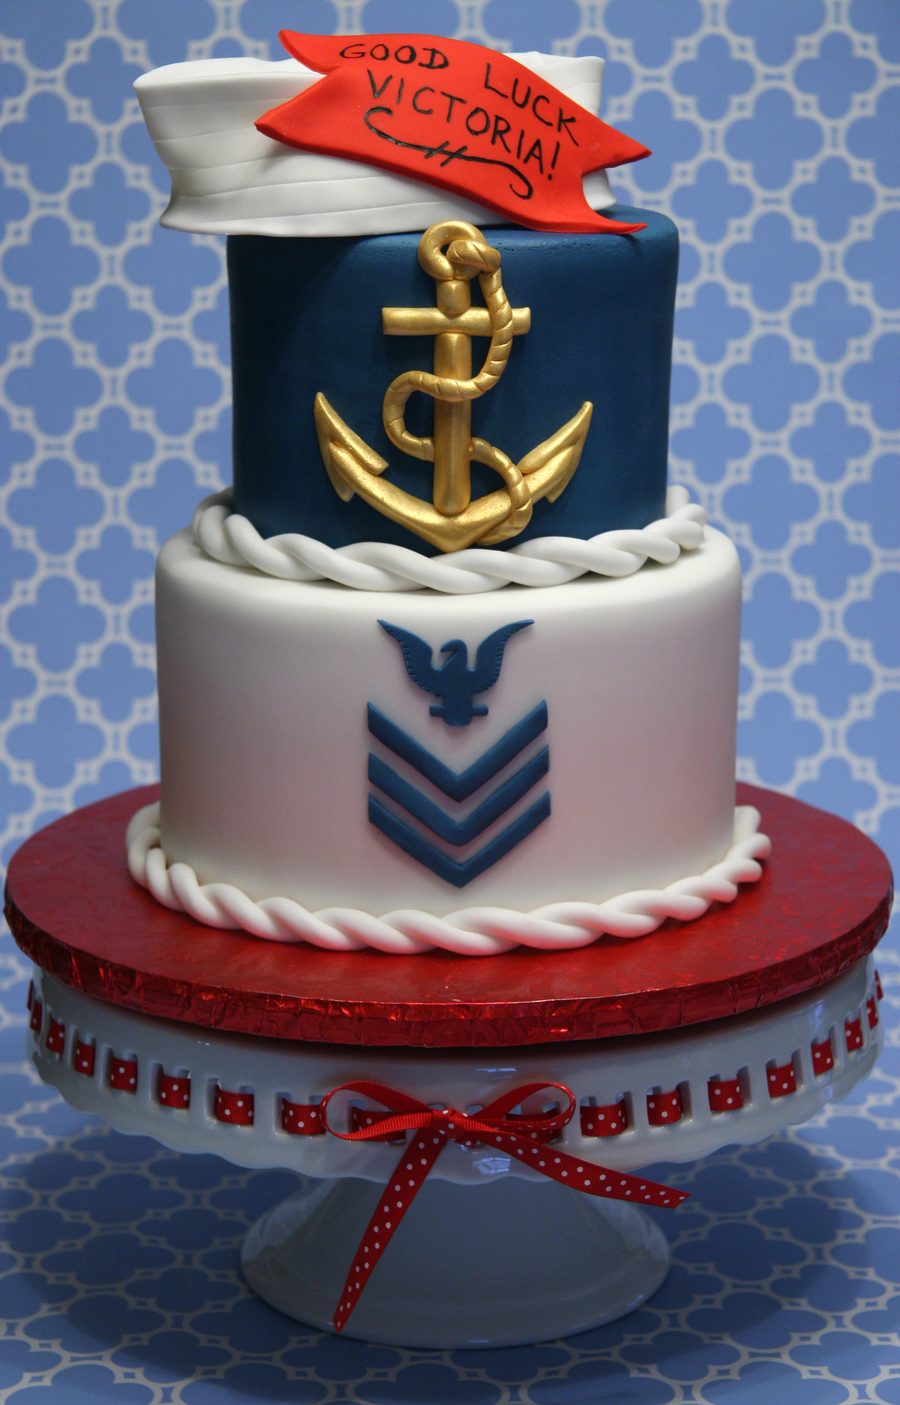 Royal Navy Themed Cakes